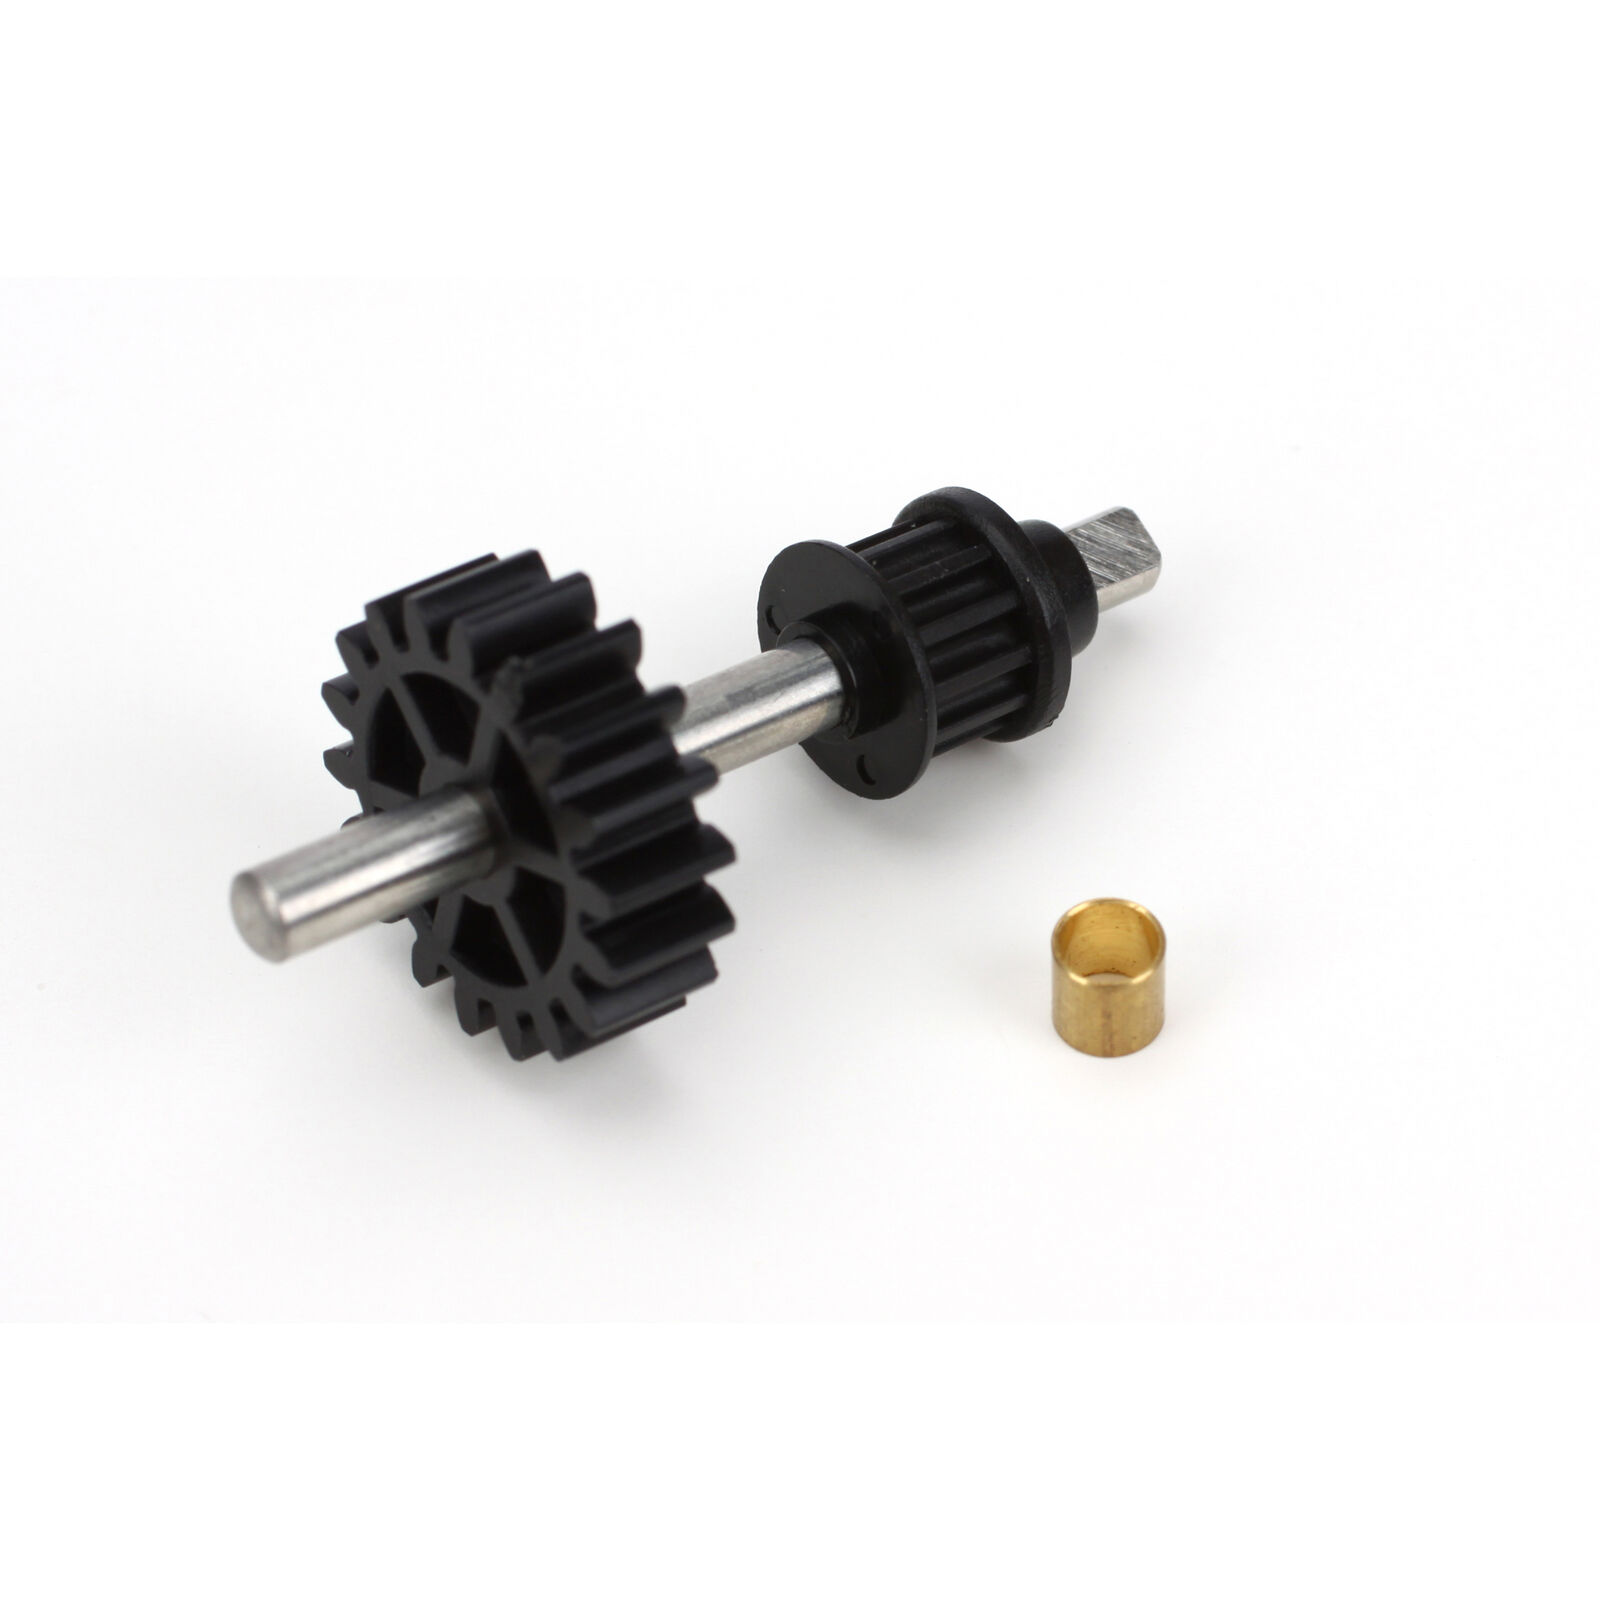 Tail Drive Gear/Pulley Assembly: B450, B400, 330X, 330S